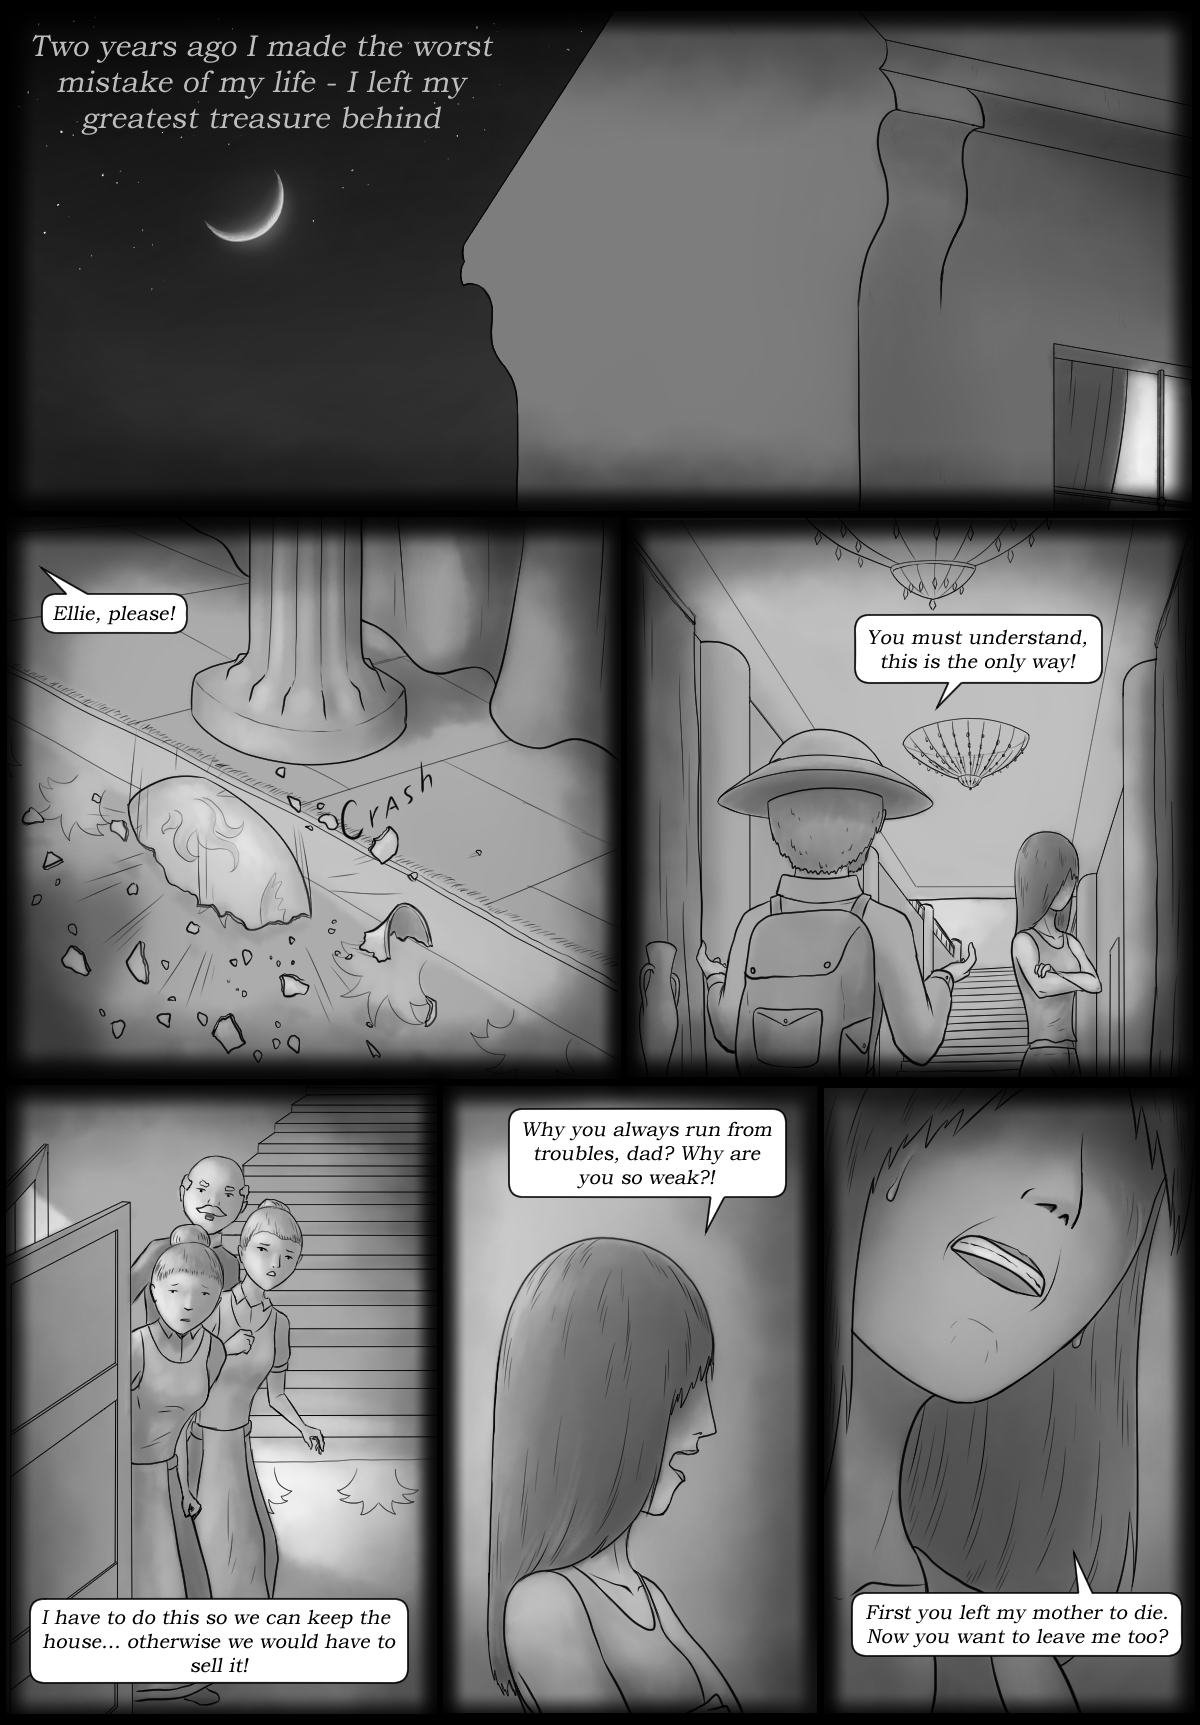 Page 97 - The lost treasure (Part 1)